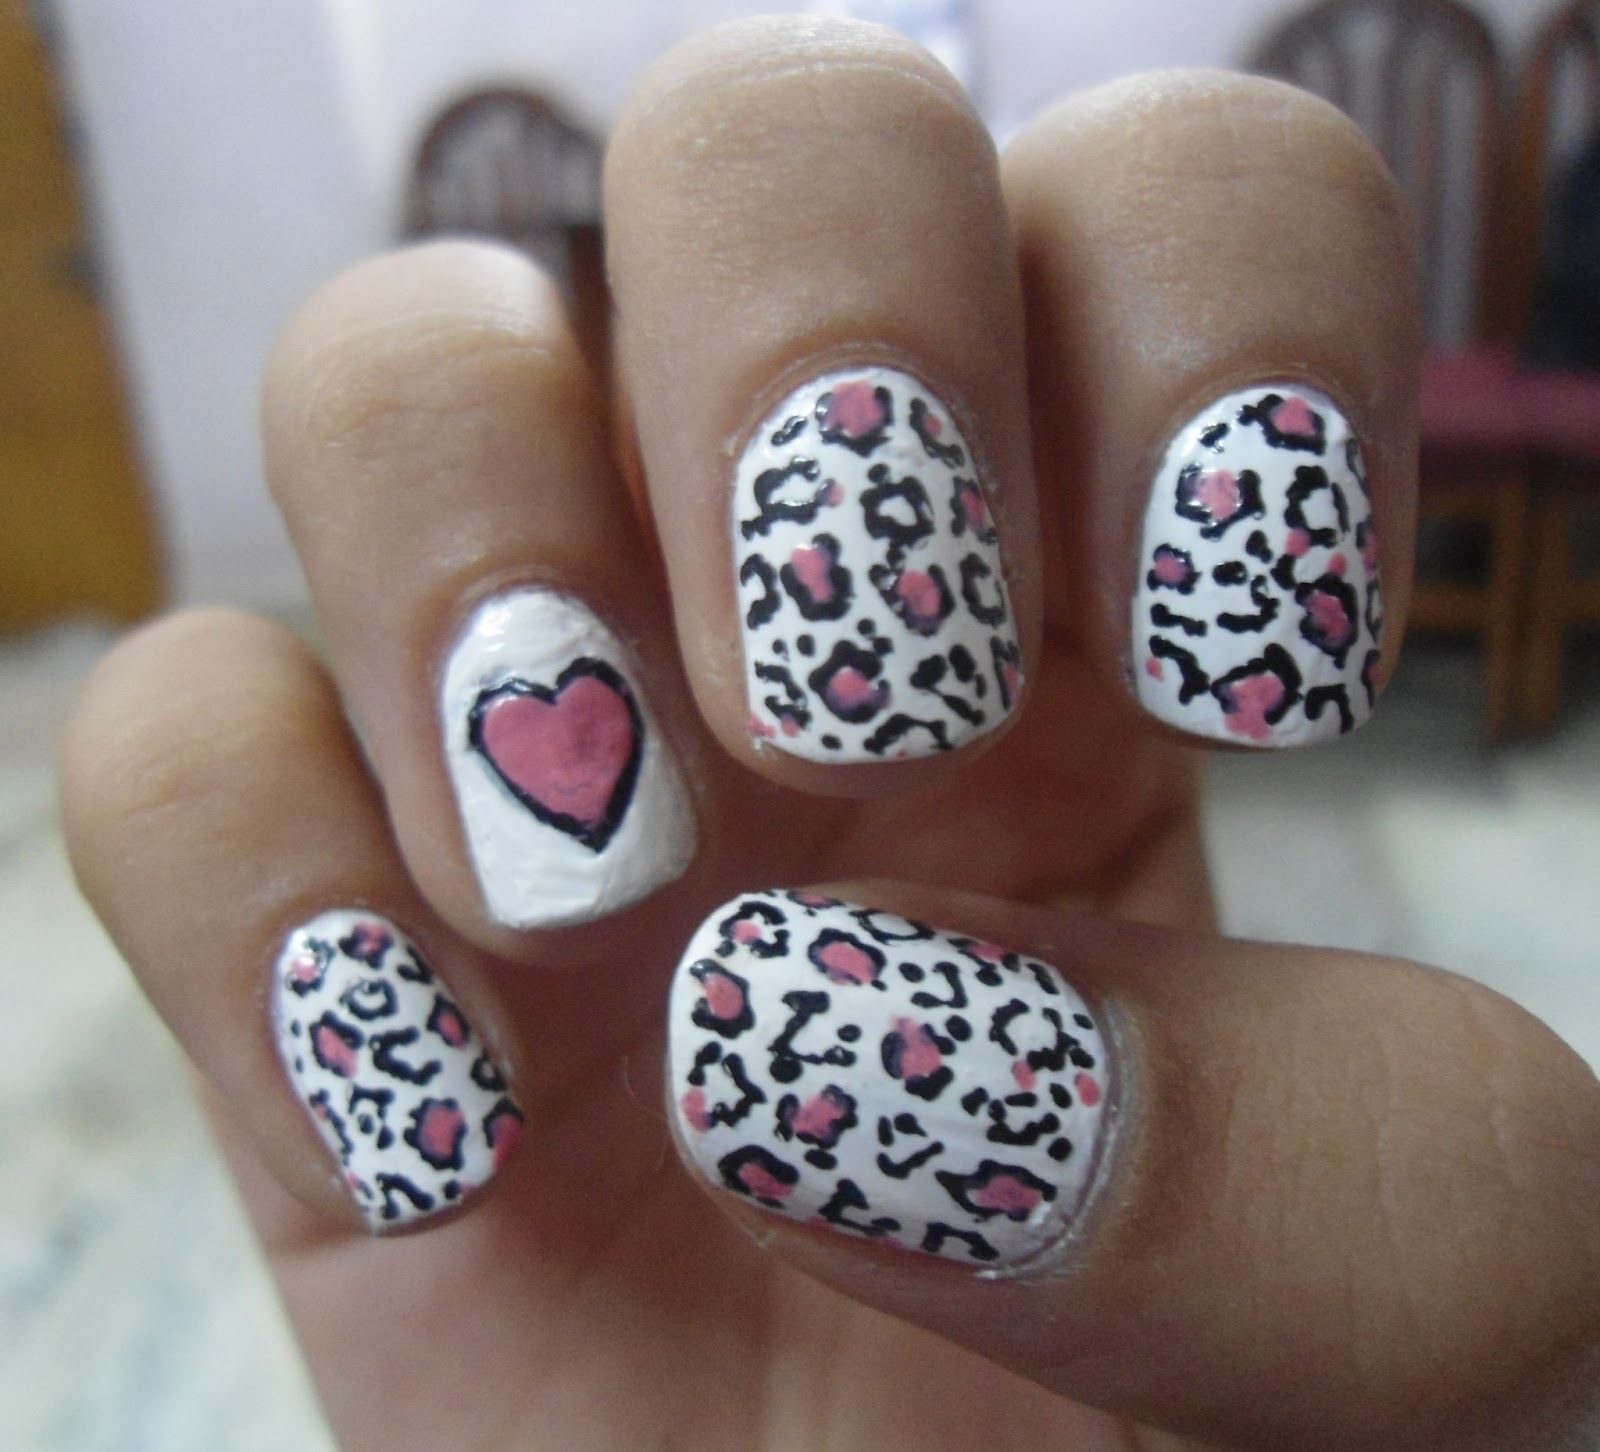 Cute Cheetah Print Nail Design | cute cheetah print nail ...